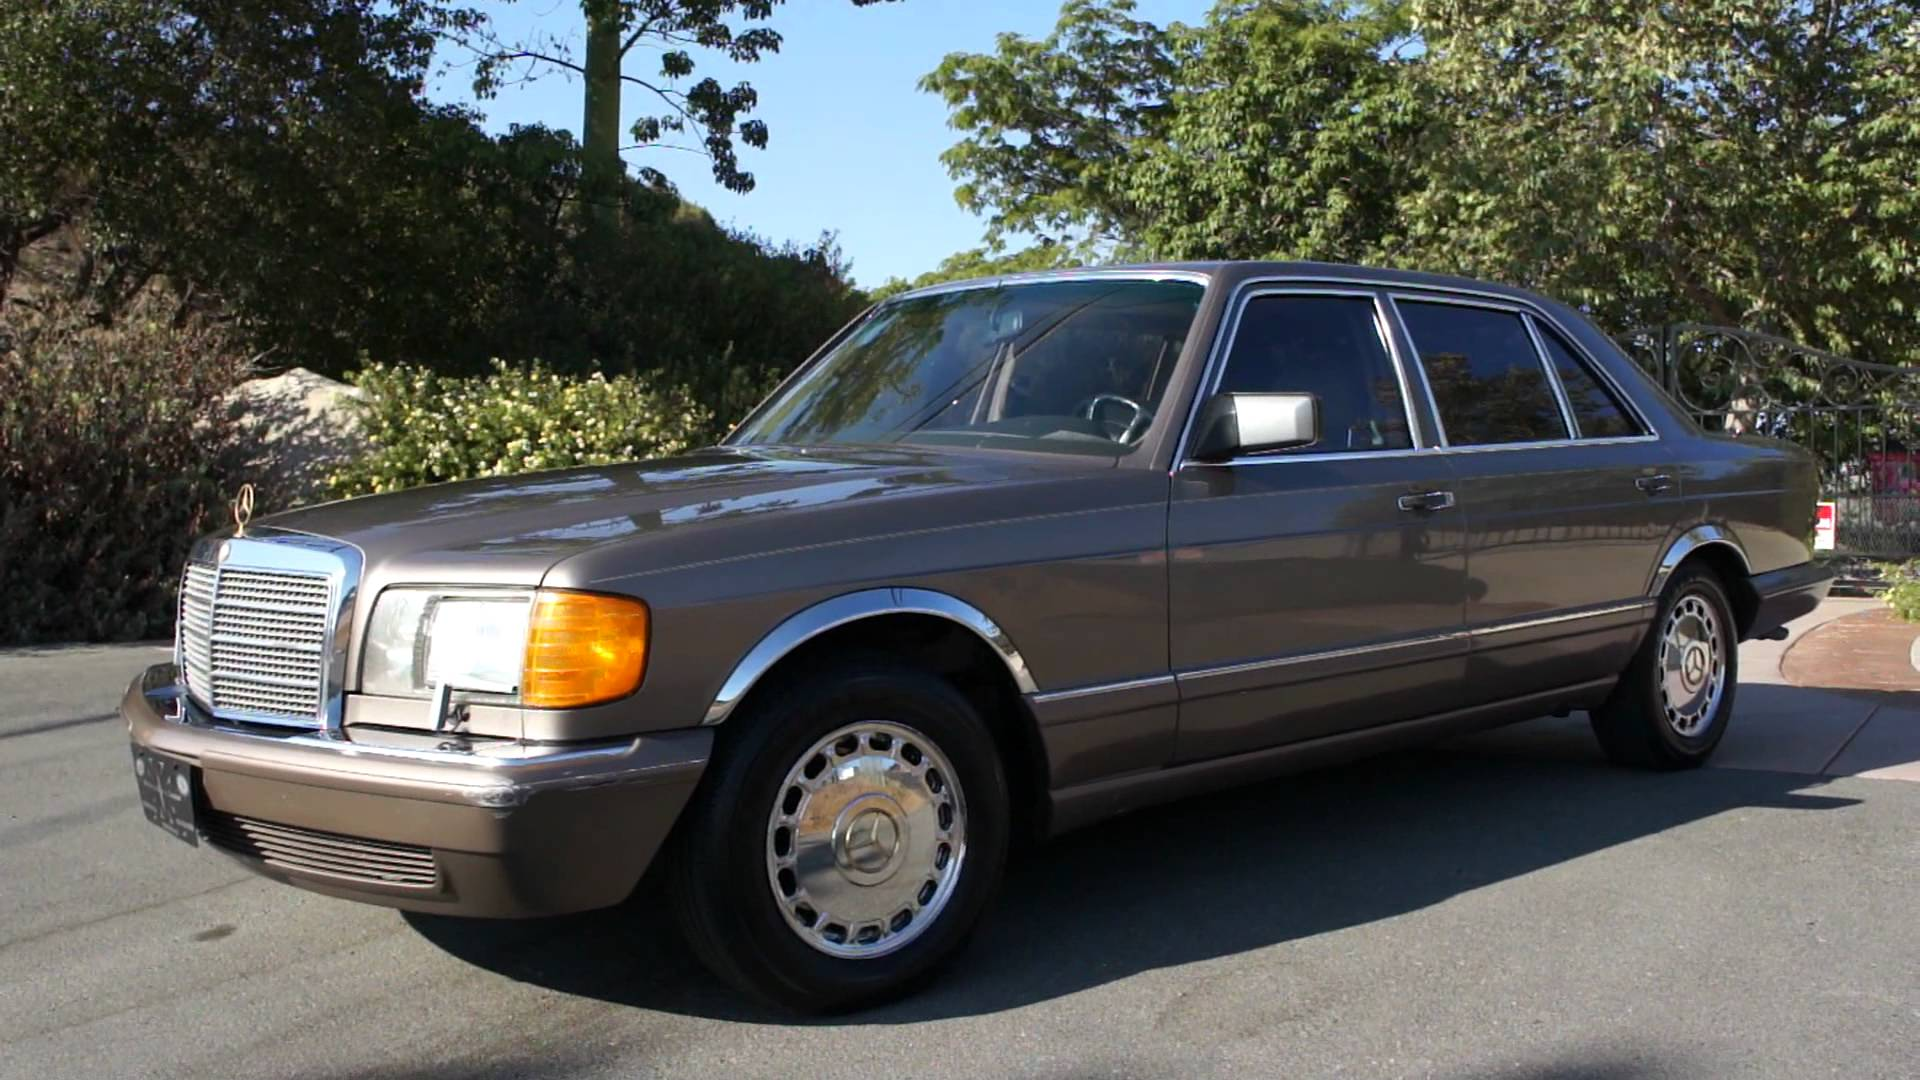 1991 mercedes benz 420 class photos informations for 1991 mercedes benz 420sel